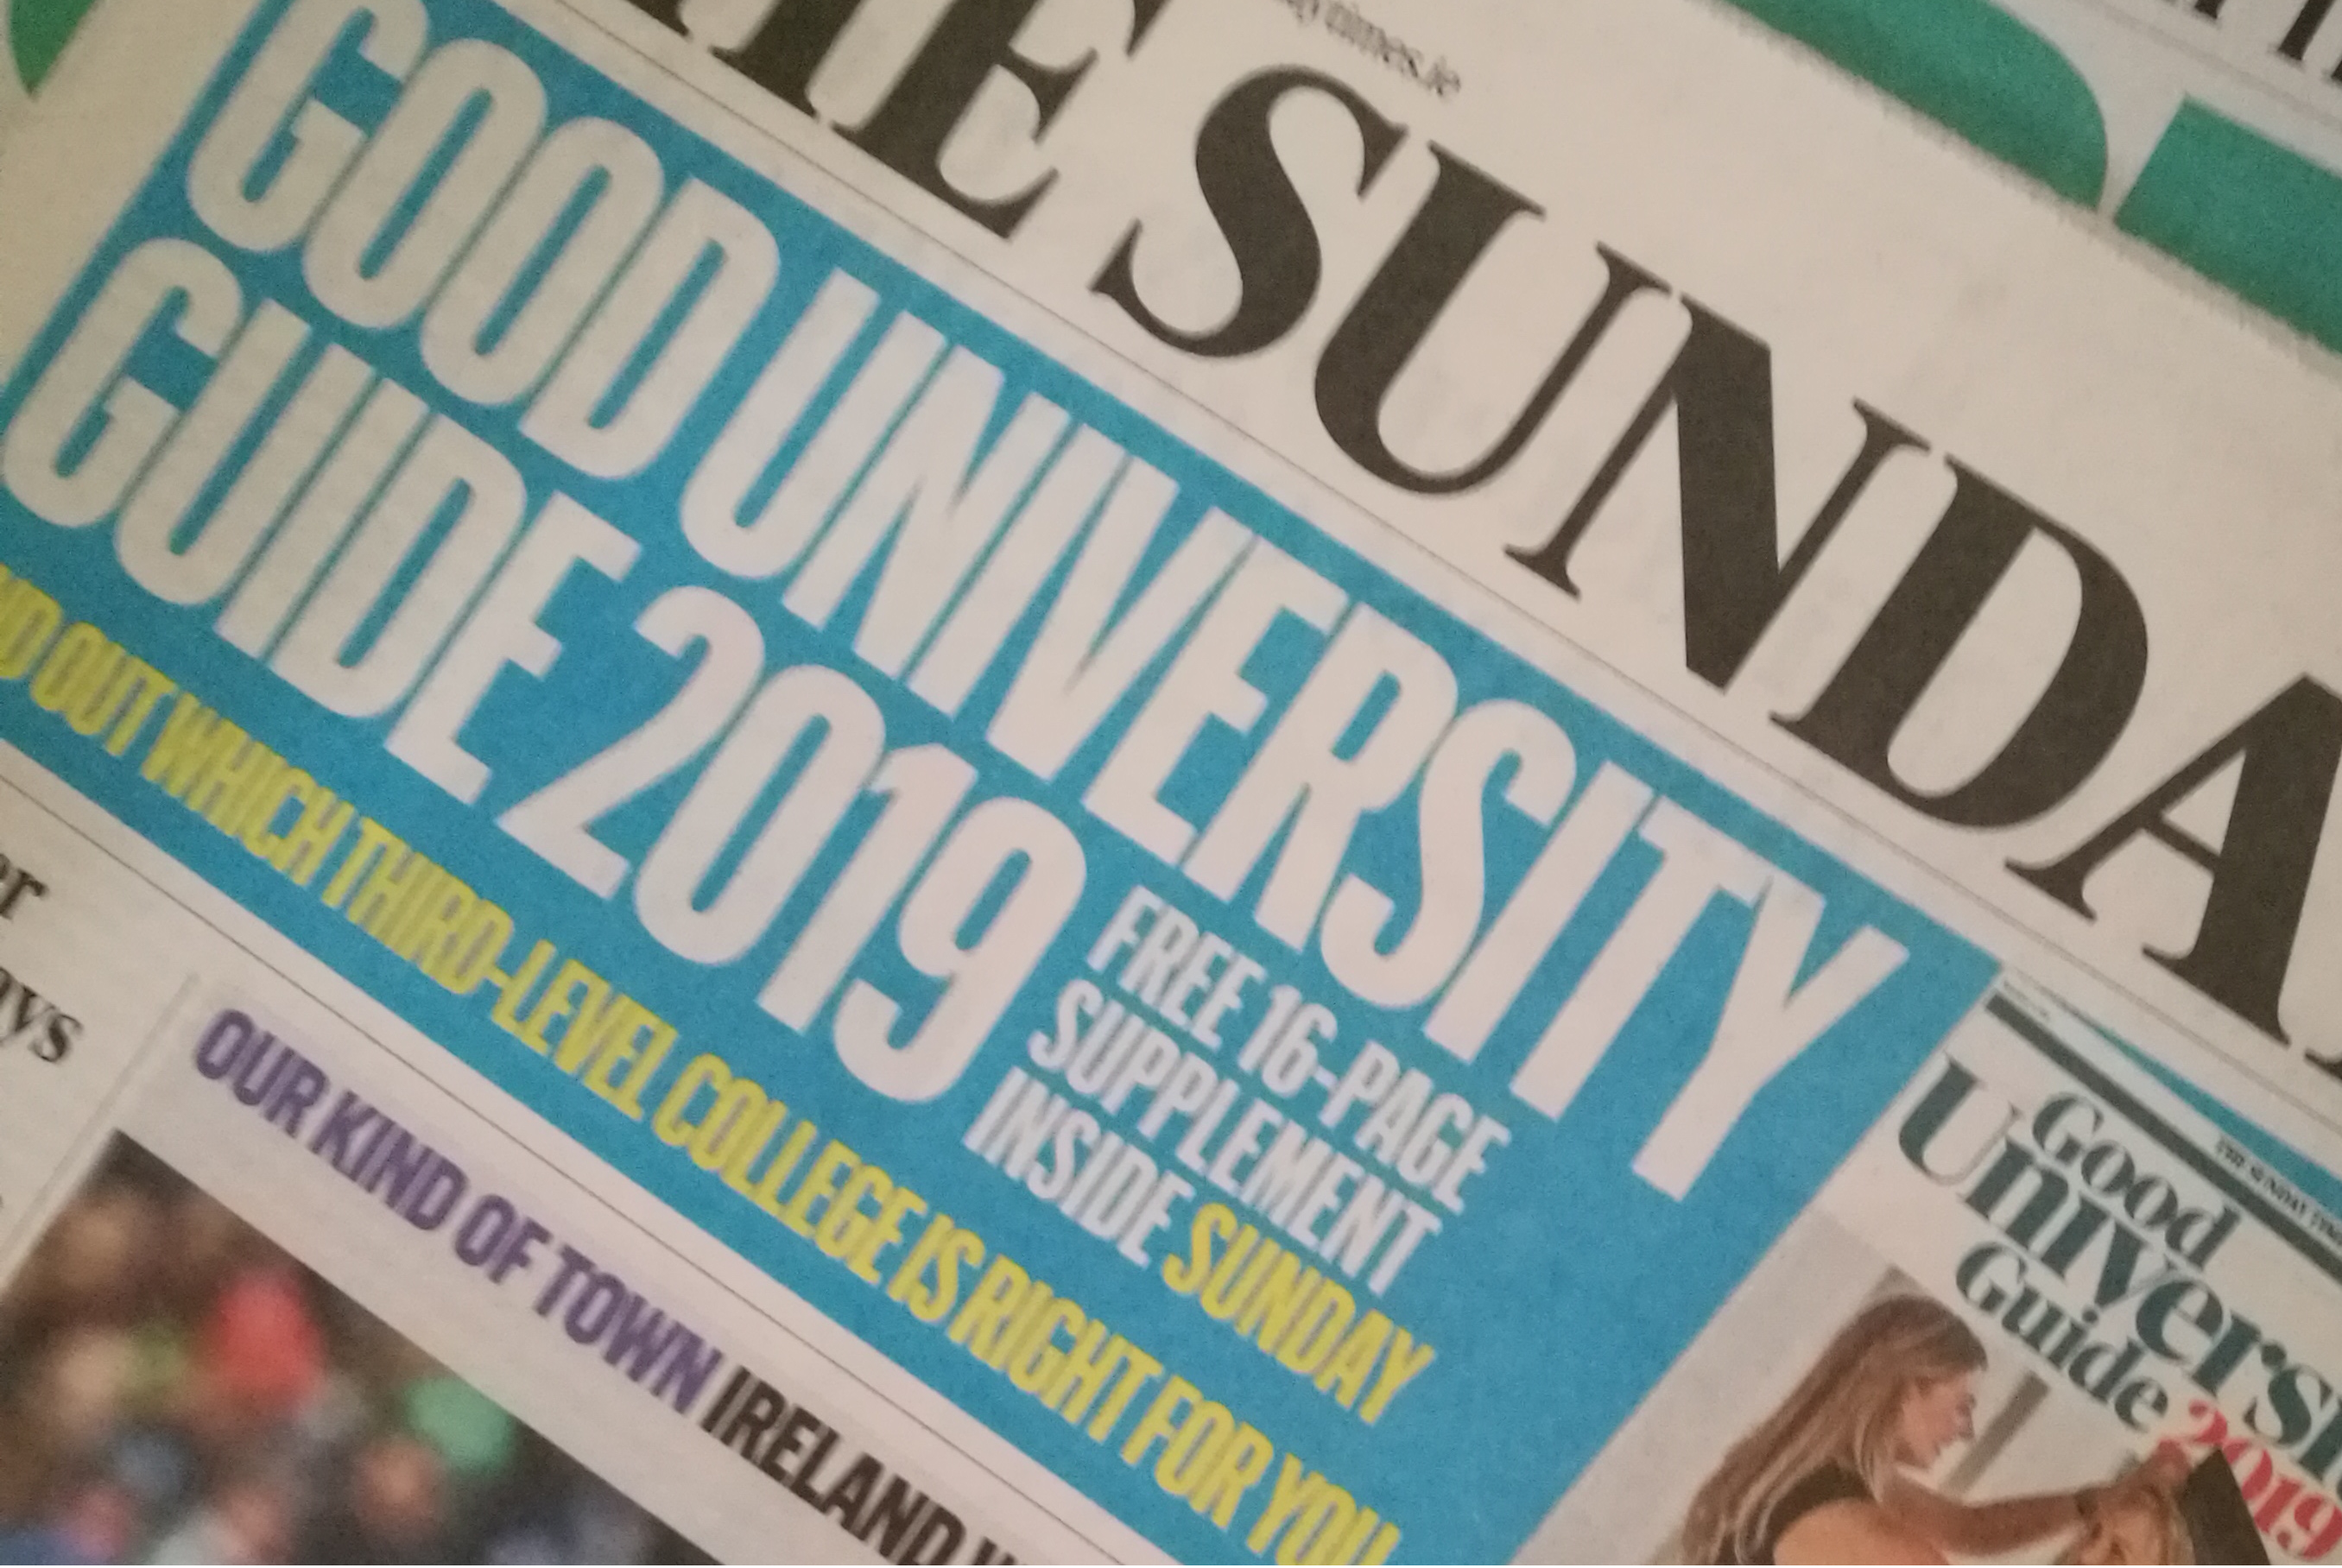 WIT, in 7th place for 2019, jumped five places in one year. Altogether 21 higher education institutes are listed.